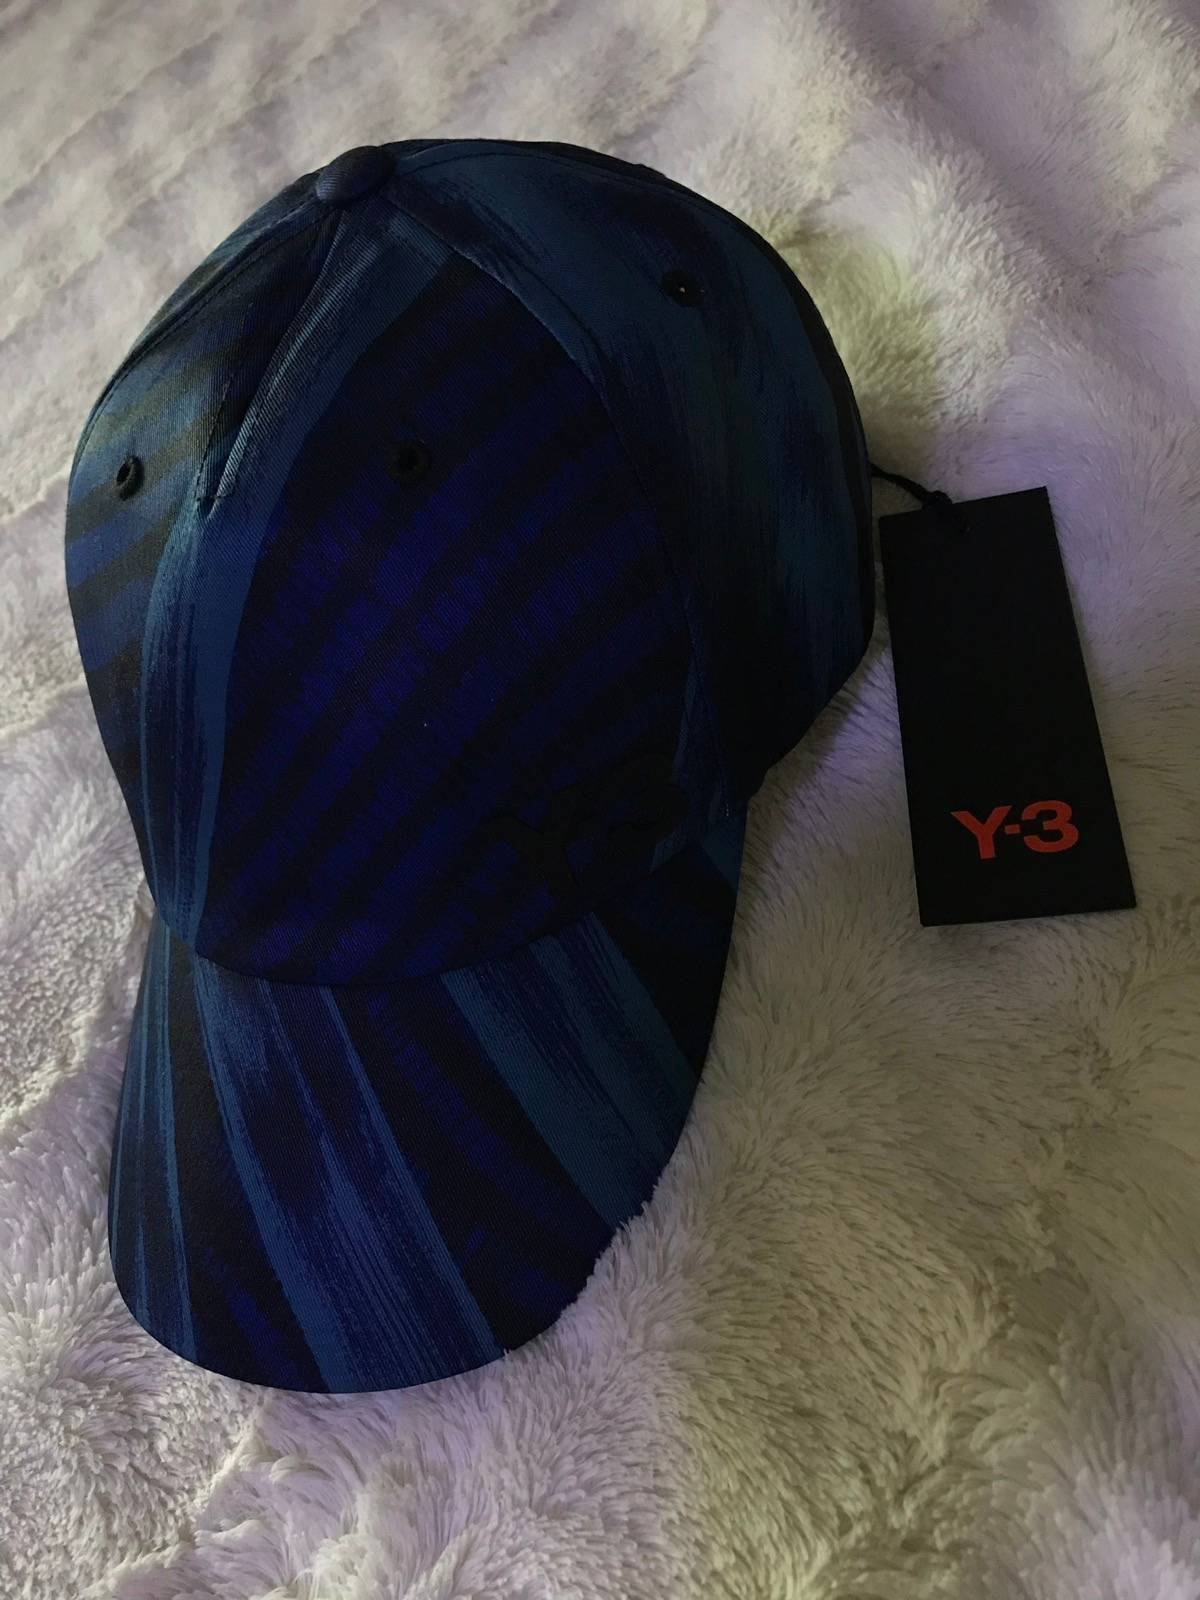 97234010c1a Y-3 New Lux Floral Hat Size one size - Hats for Sale - Grailed